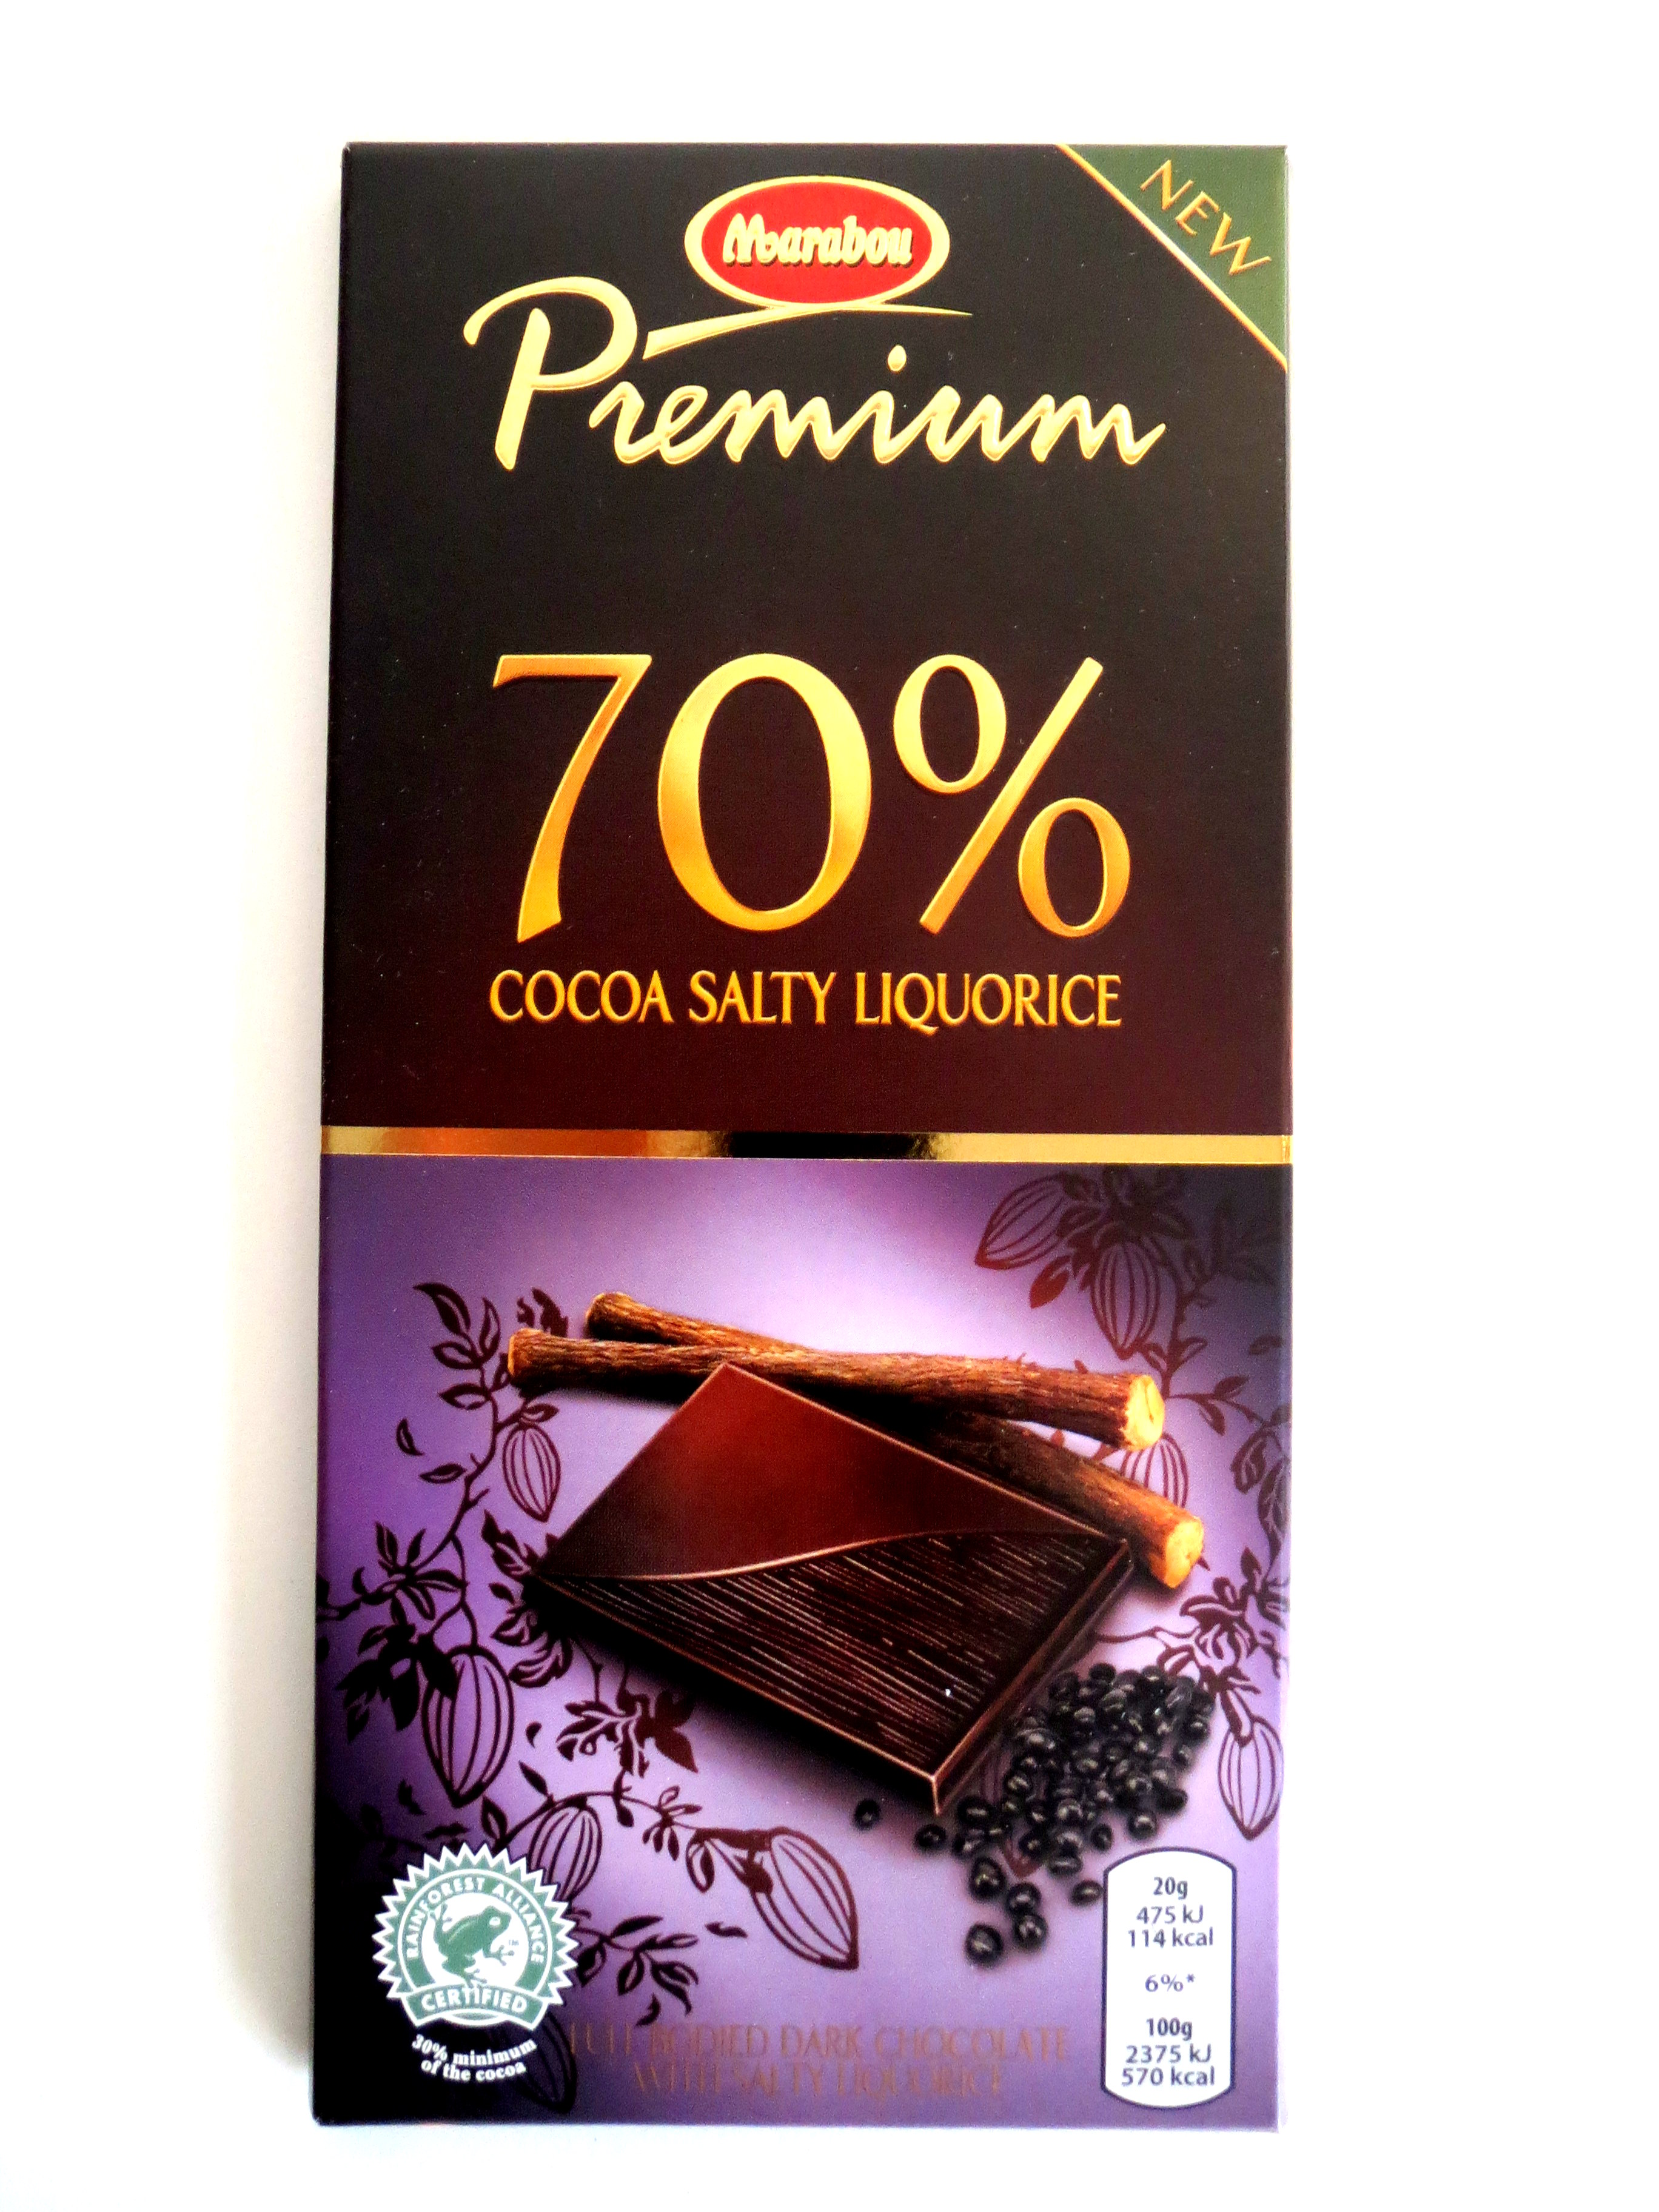 marabou premium 70 cocoa salty liquorice kakao salz lakritz schokolade 100g ebay. Black Bedroom Furniture Sets. Home Design Ideas